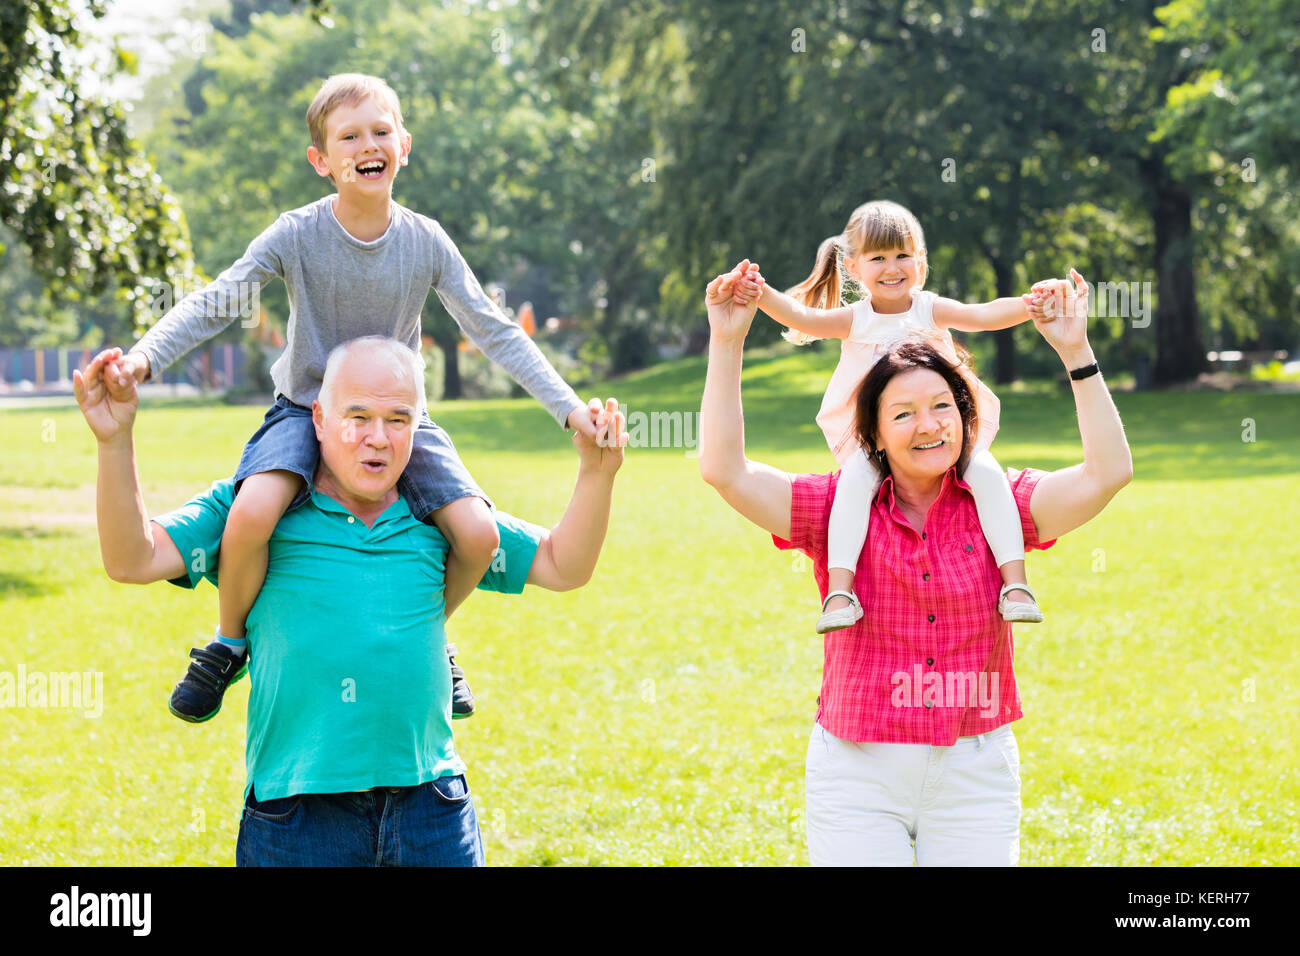 Happy Family Having Fun With Kids Doing Piggyback Ride In Park - Stock Image